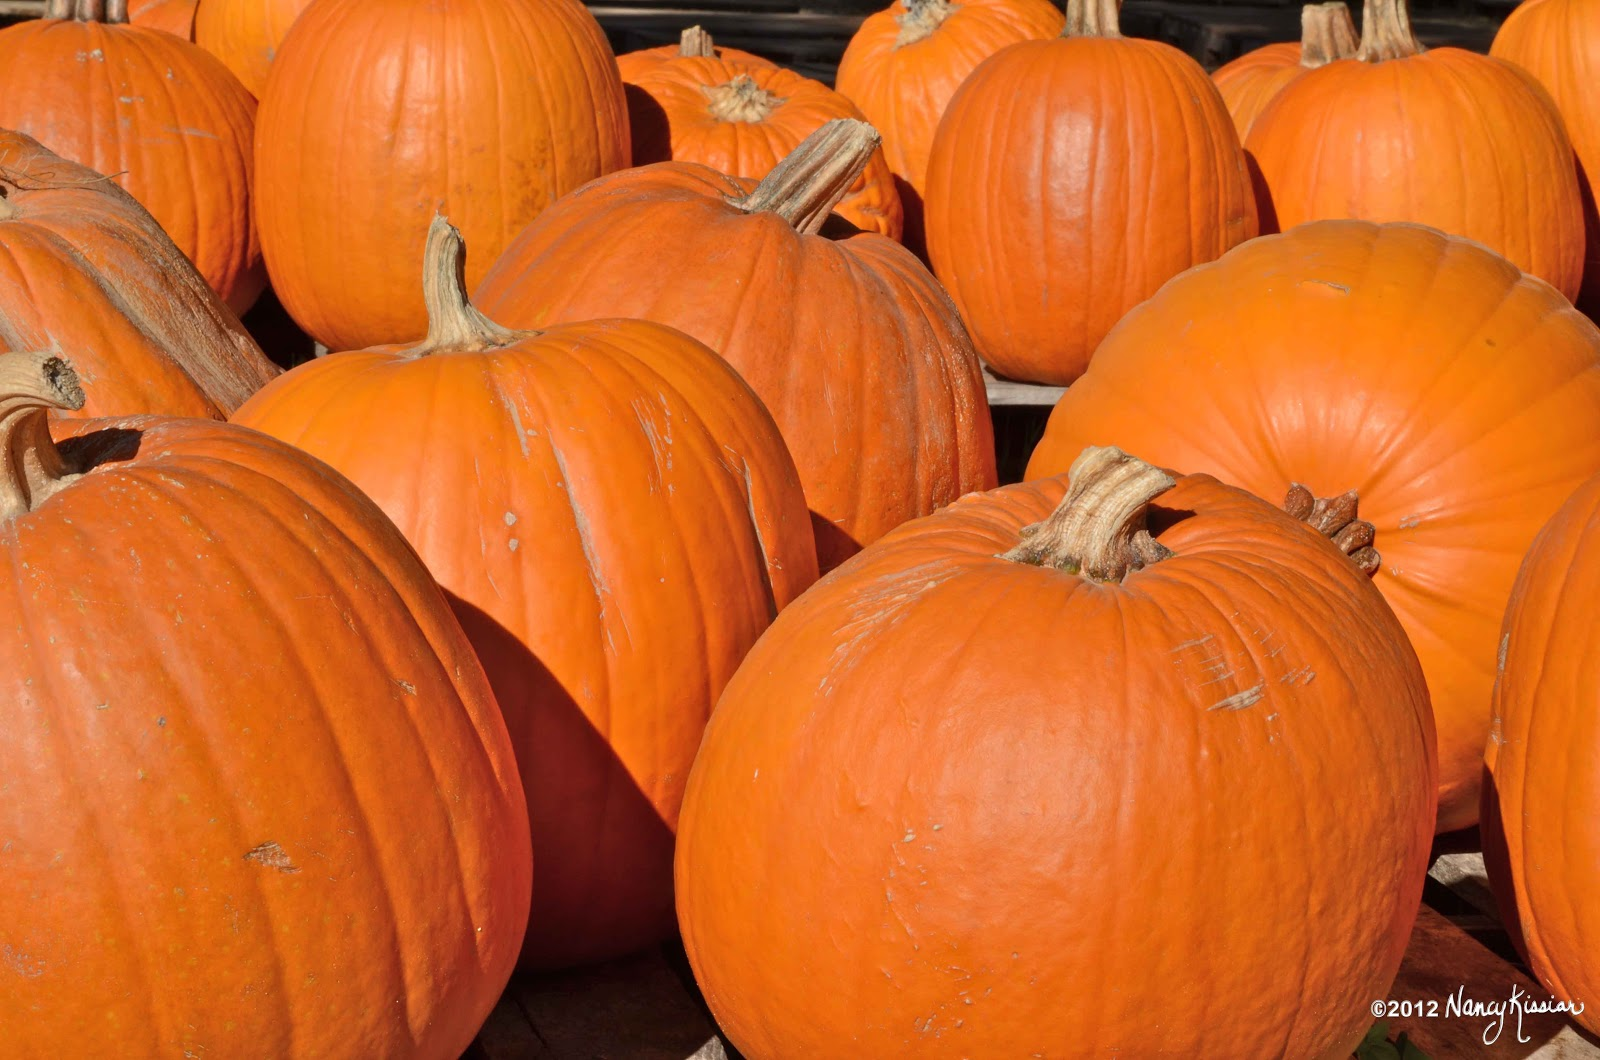 Wild About Texas: It's All About Pumpkins